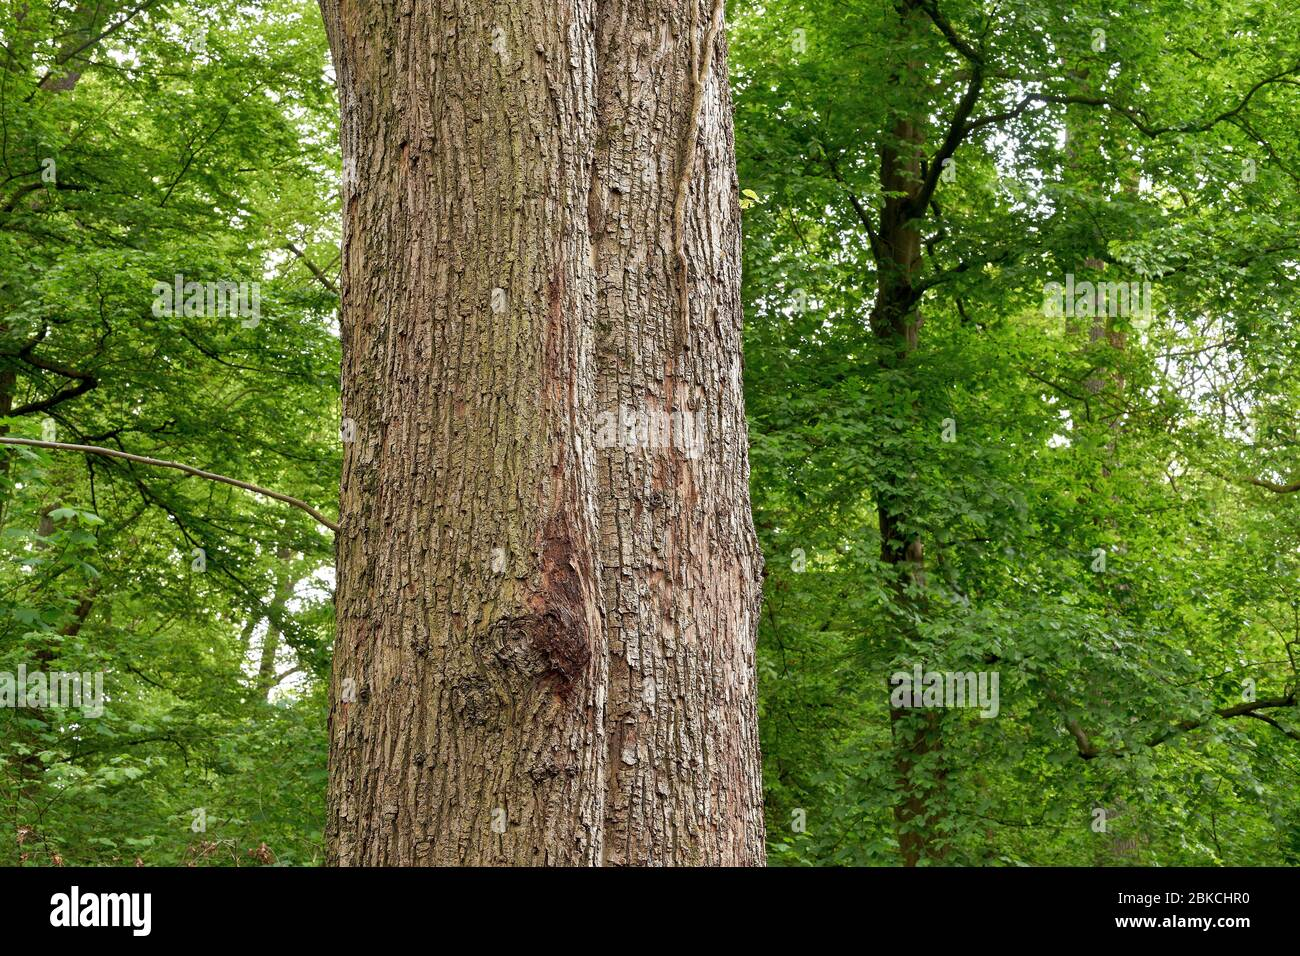 The trunk of a beautiful old linden tree in the spring forest. (Tilia platyphyllos) Stock Photo